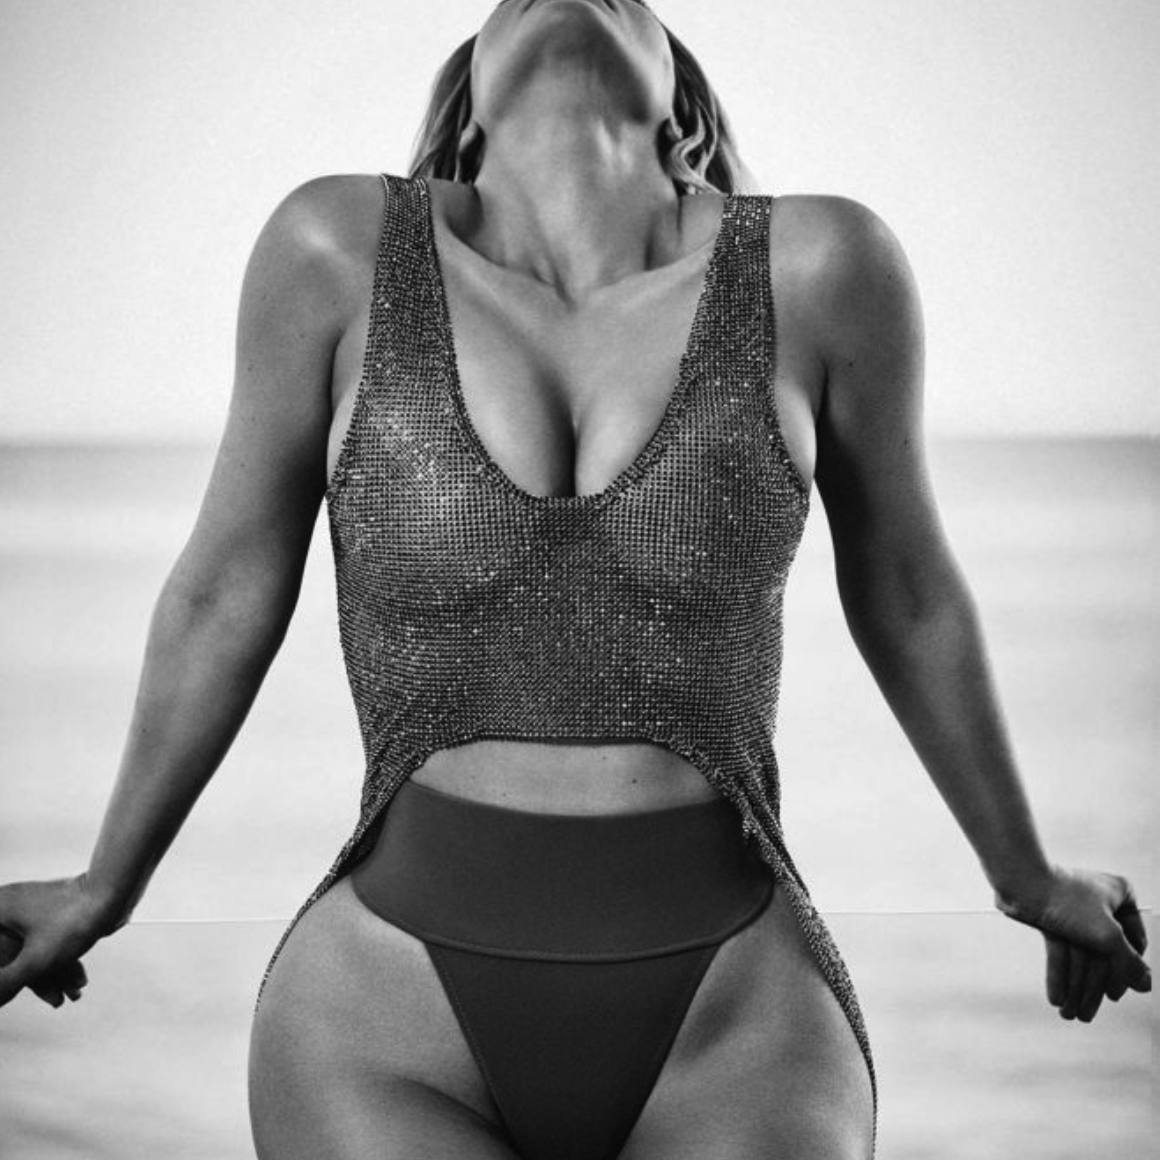 Kim Kardashian Flaunts Her Tiny Waist and Massive Booty for Elle Magazine [SFW PICS]